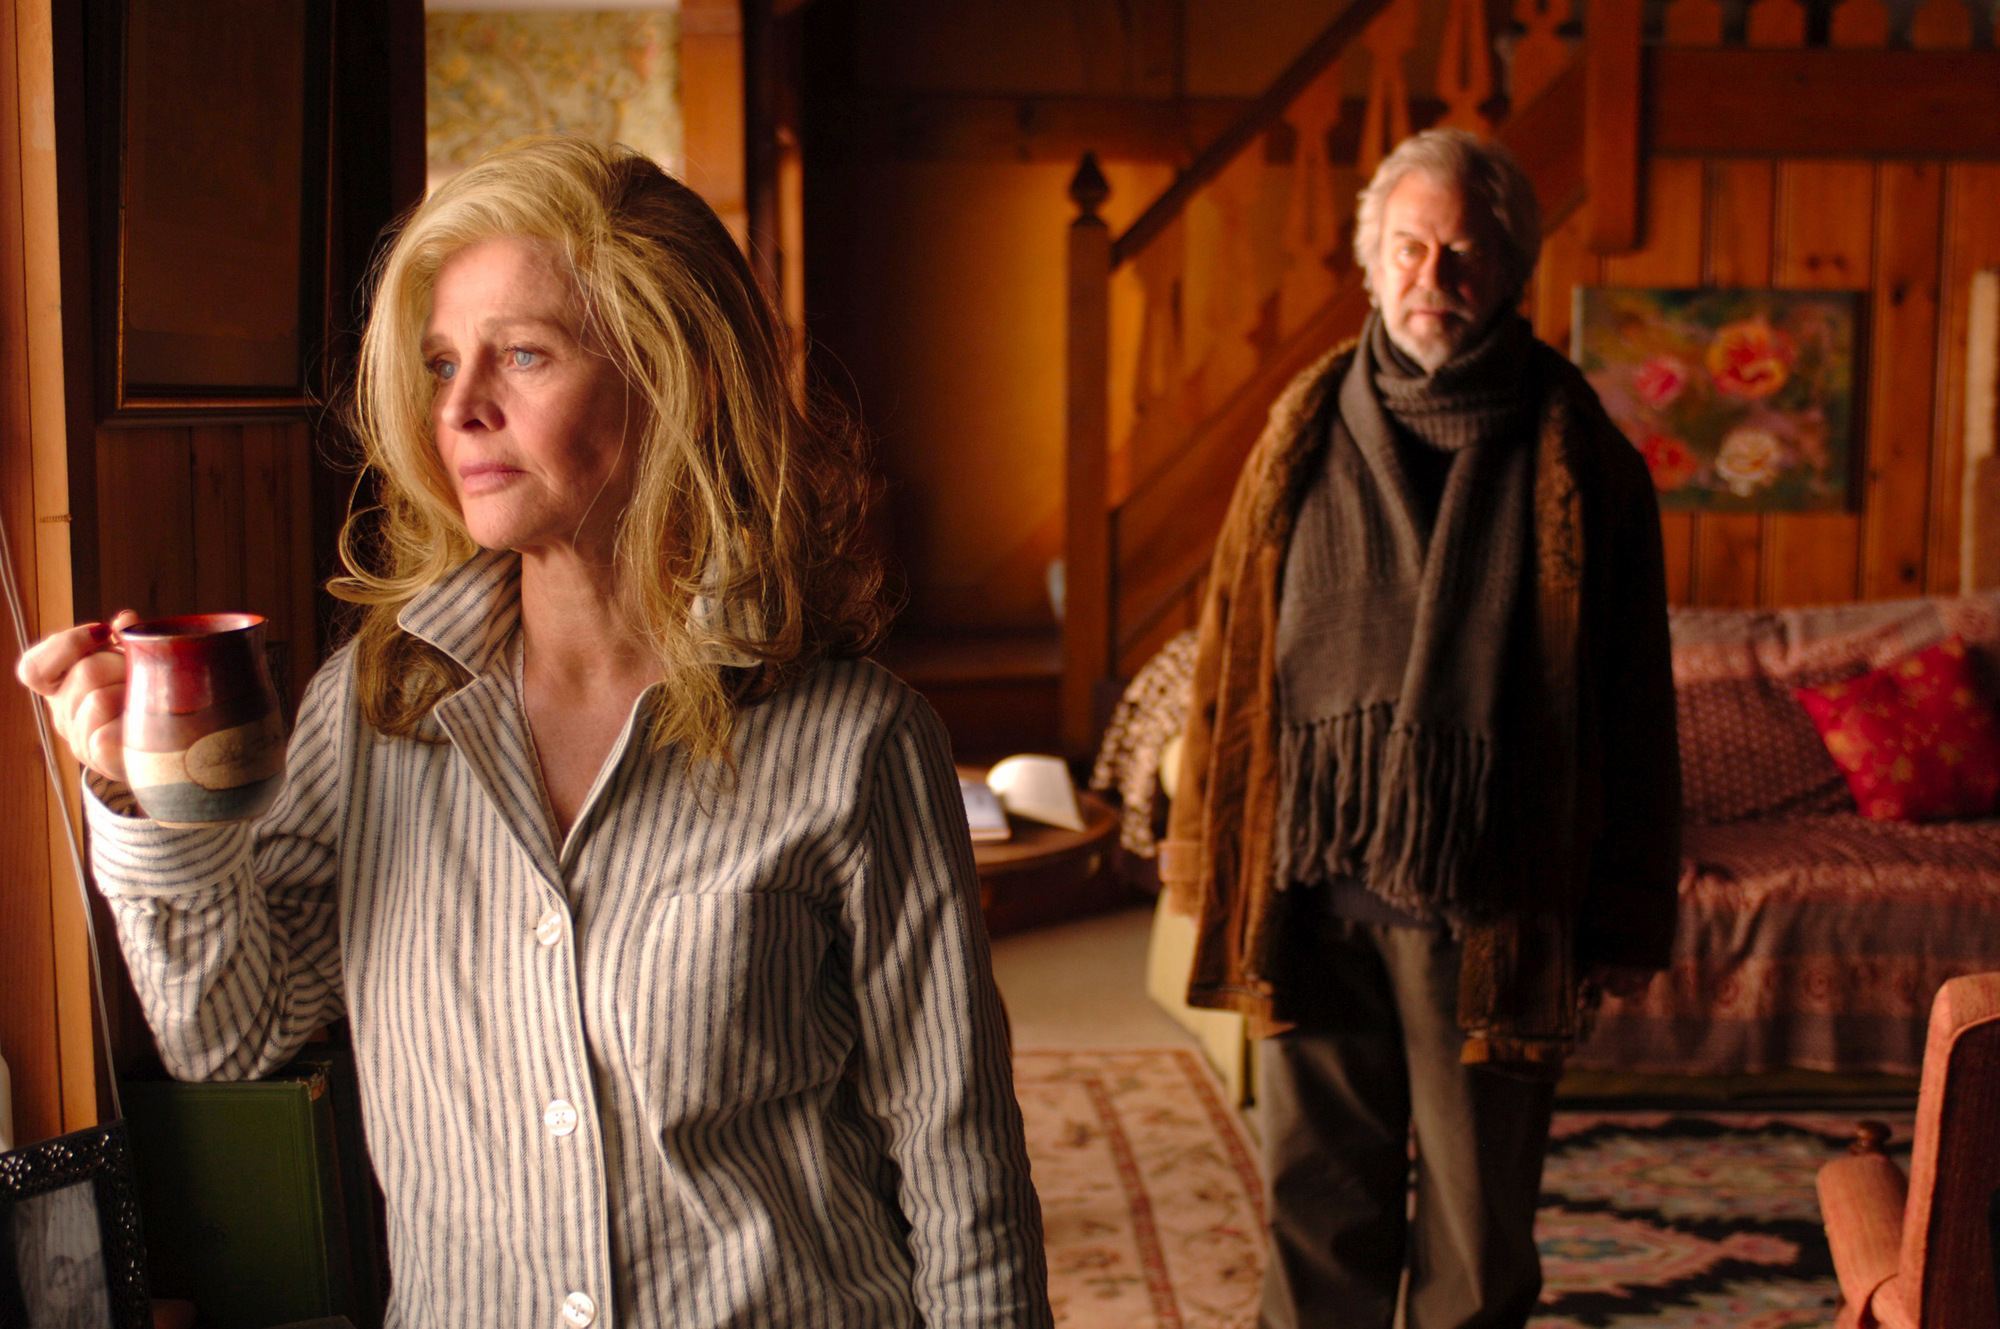 Julie Christie is shown in a scene from 'Away From Her,' about a woman stricken with Alzheimer's, with Gordon Pinsent.